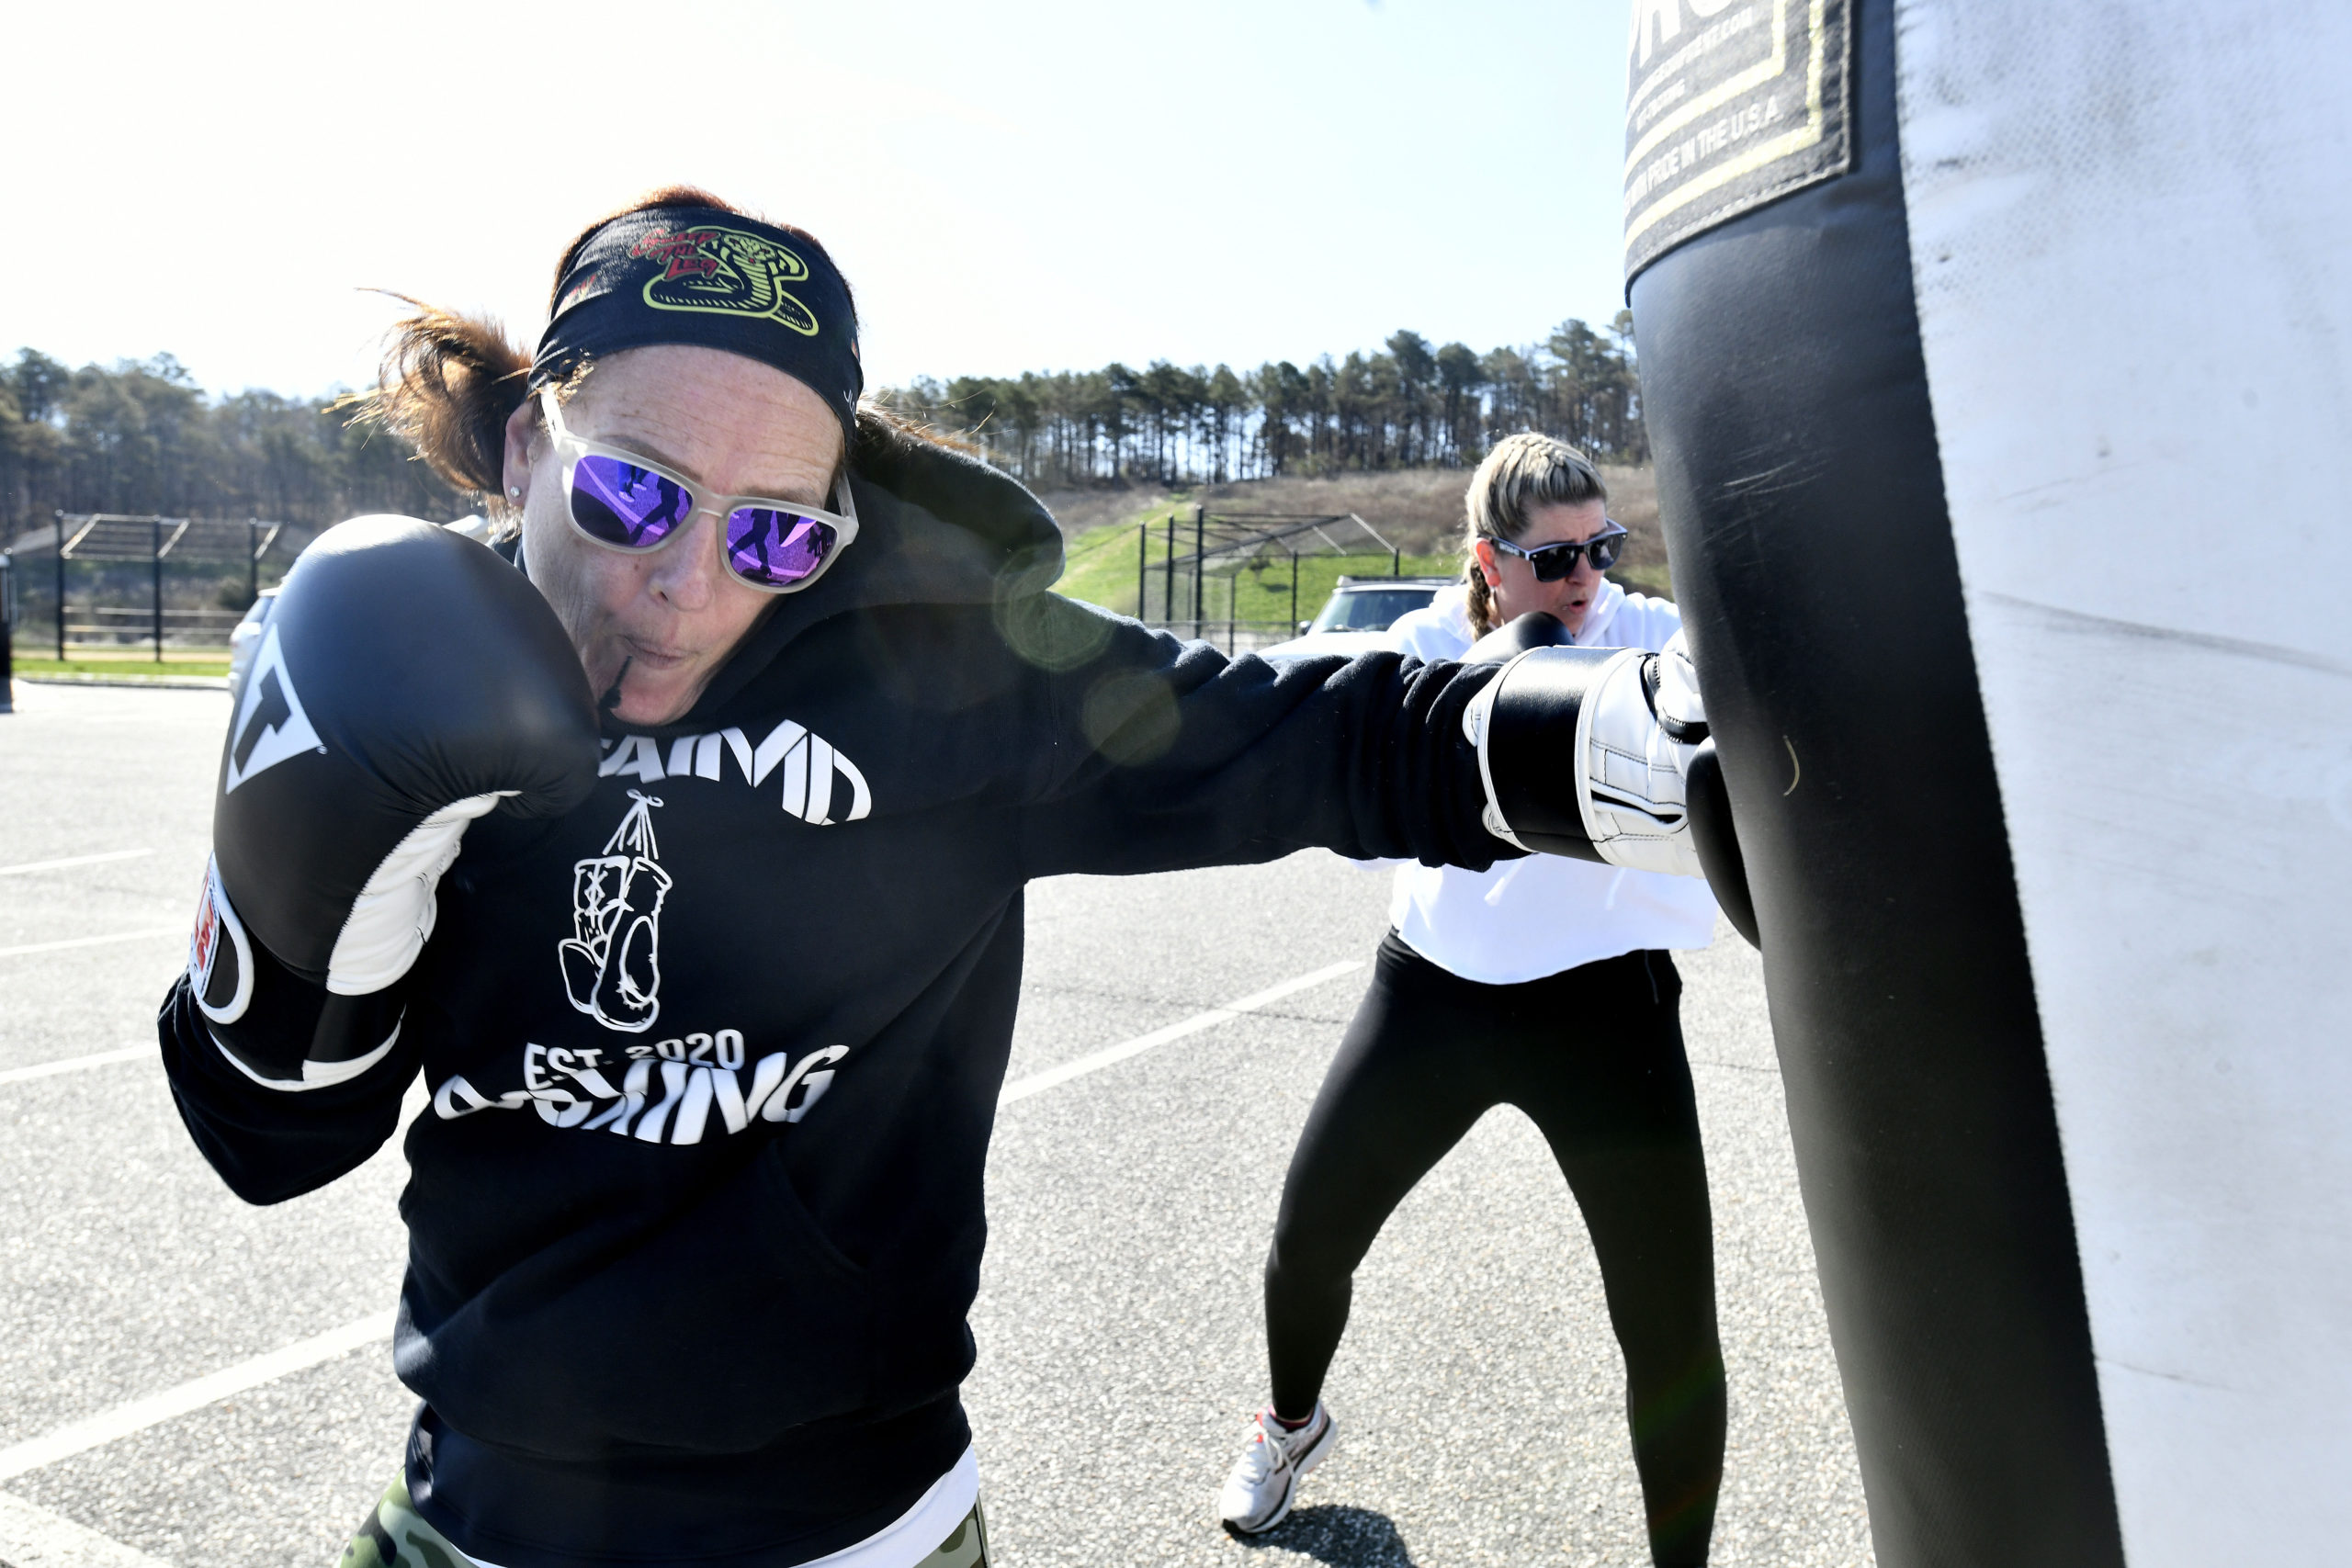 Katie Knoebel works out at  Untaimd Fitness at the SYS parking lot.   DANA SHAW